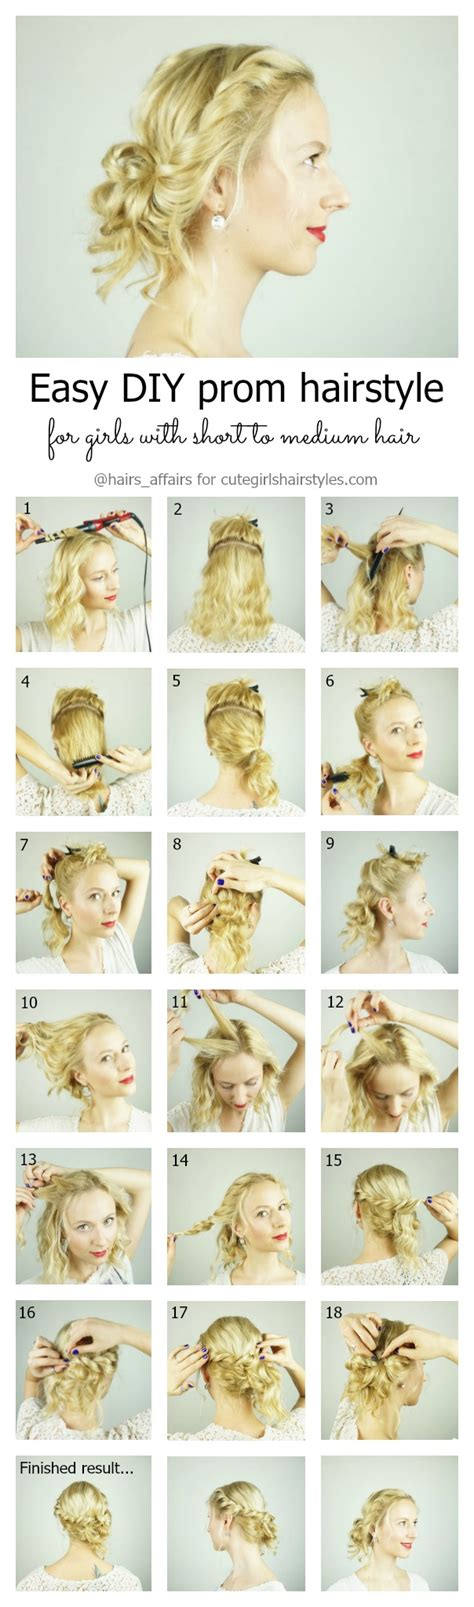 instructions on how to do a curly dressy chin lenght hairstyle easy diy prom hairstyle for girls with short to medium